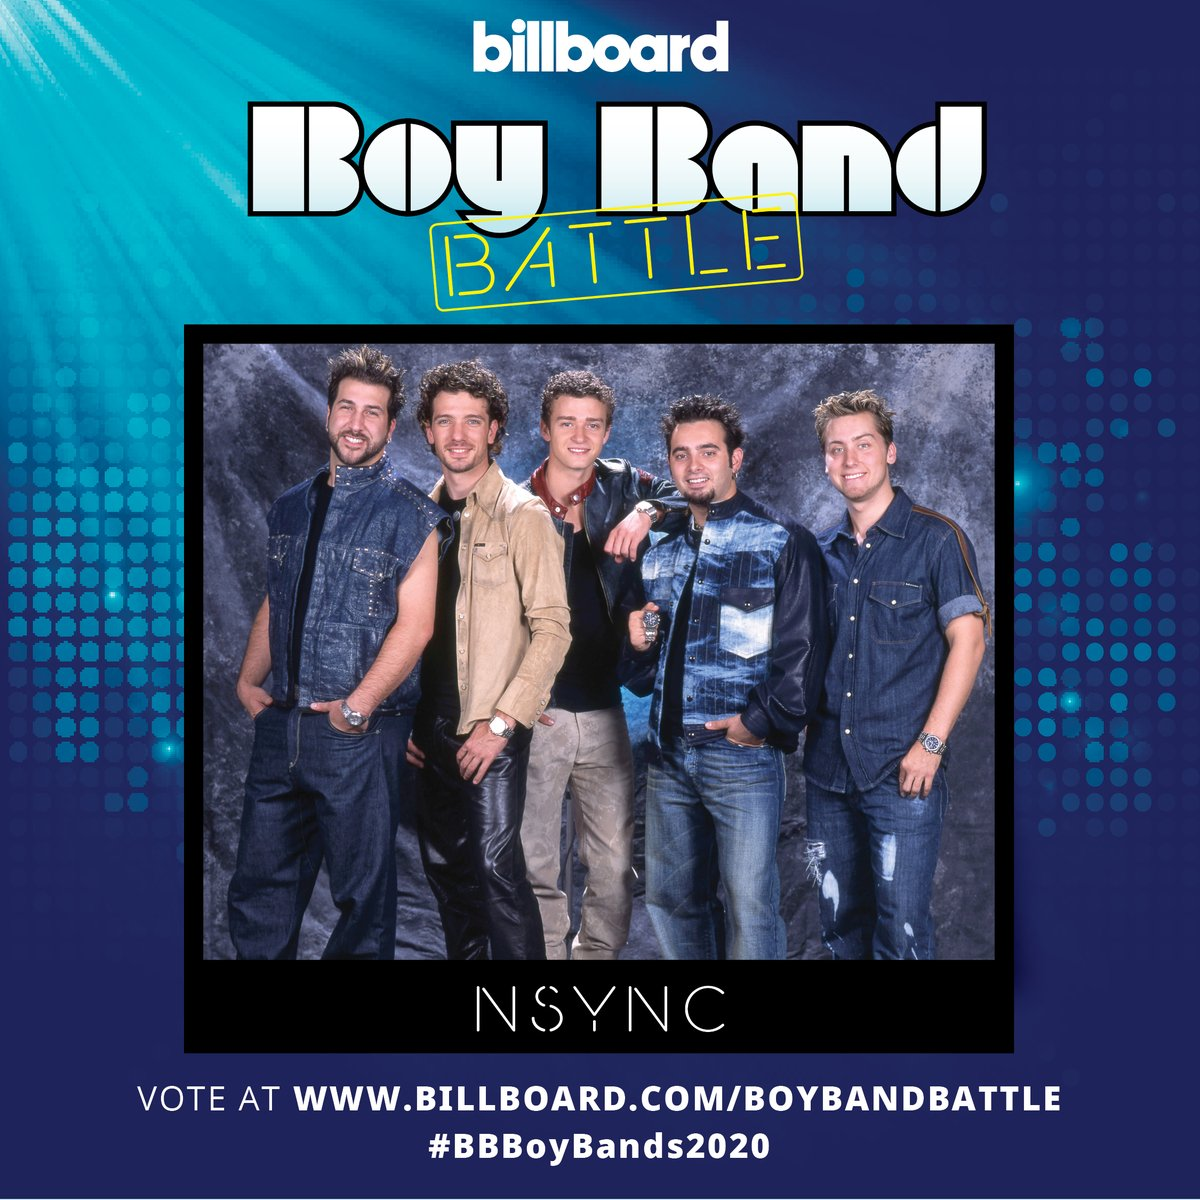 Vote for @NSYNC in round 2 of #BBBoyBands2020 here: